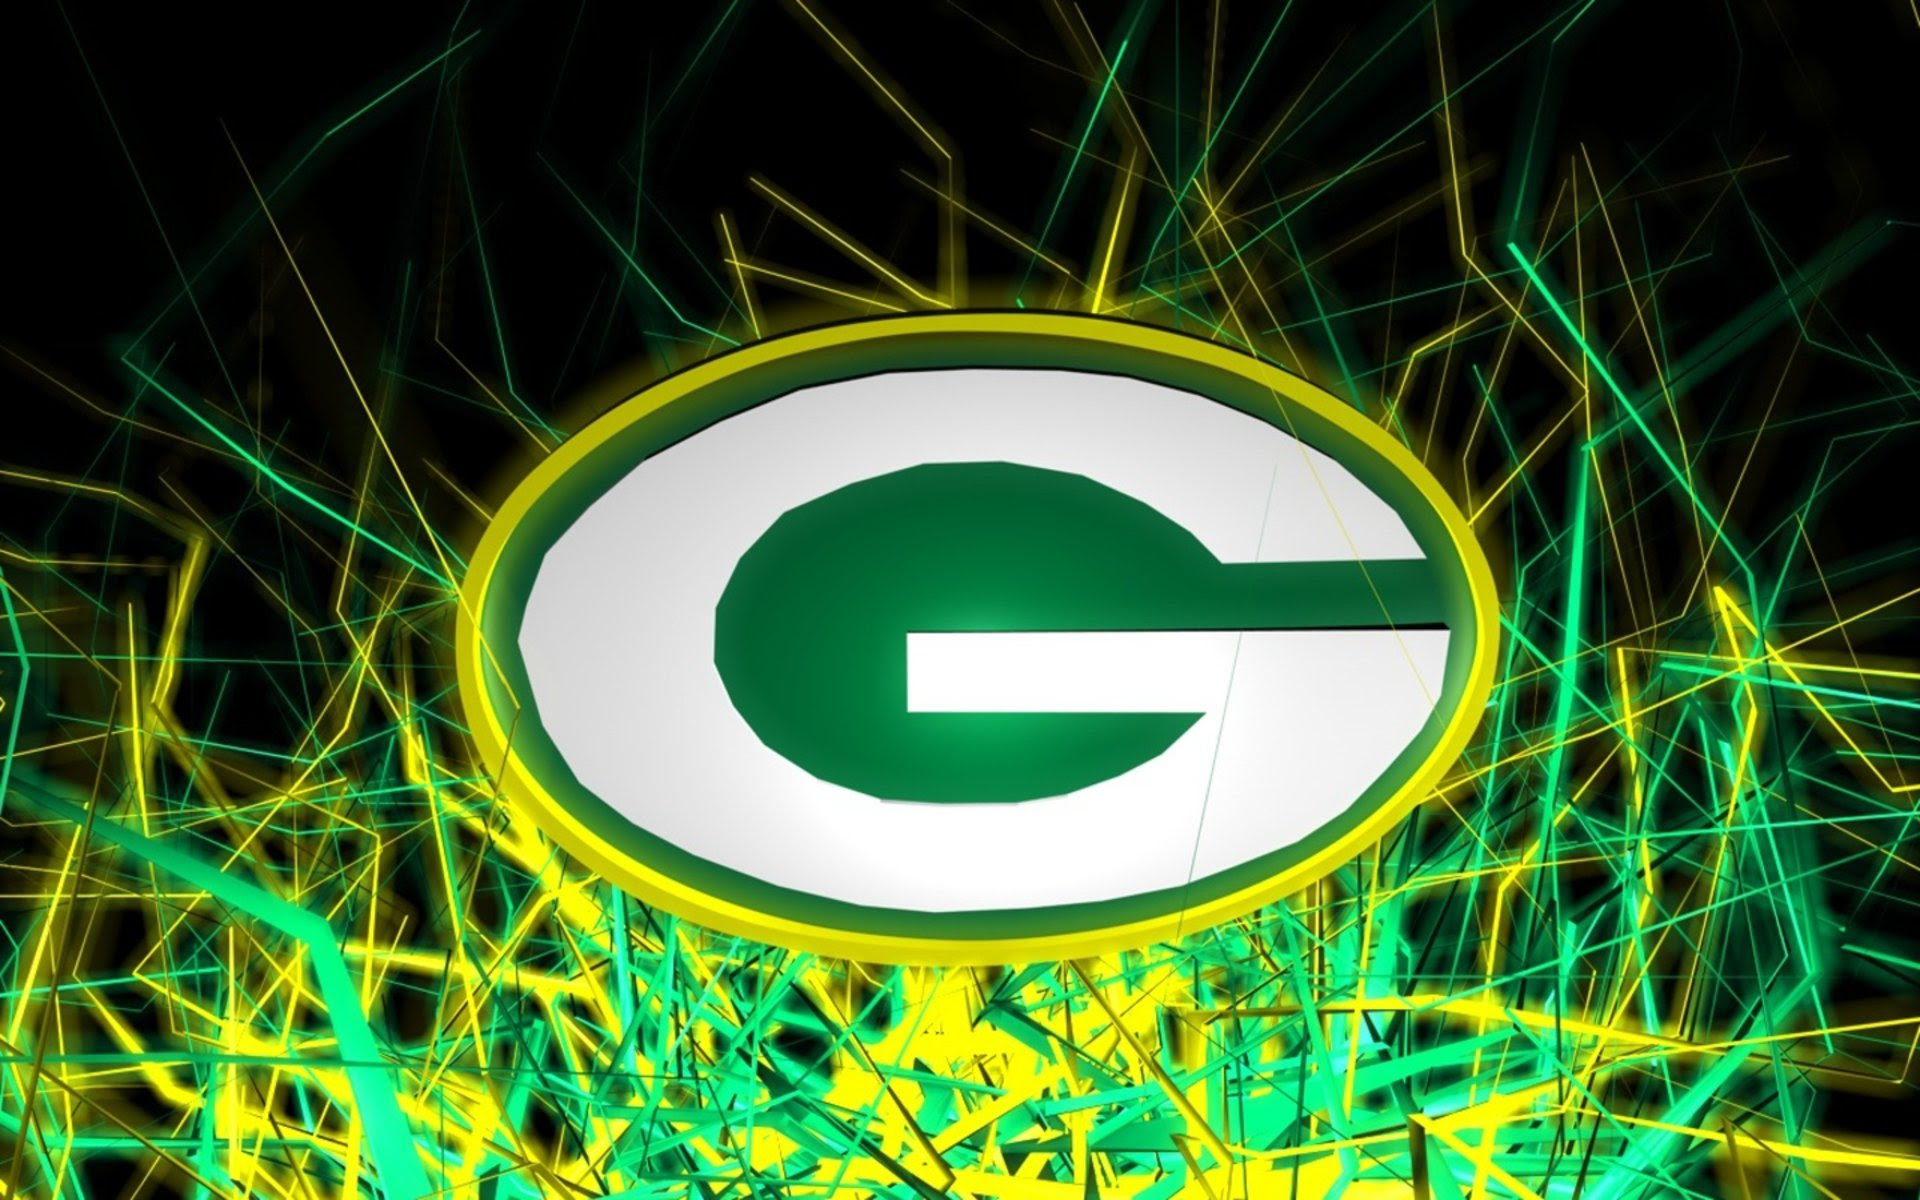 Green Bay Packers Hd Wallpapers Backgrounds Wallpaper 1920x1200